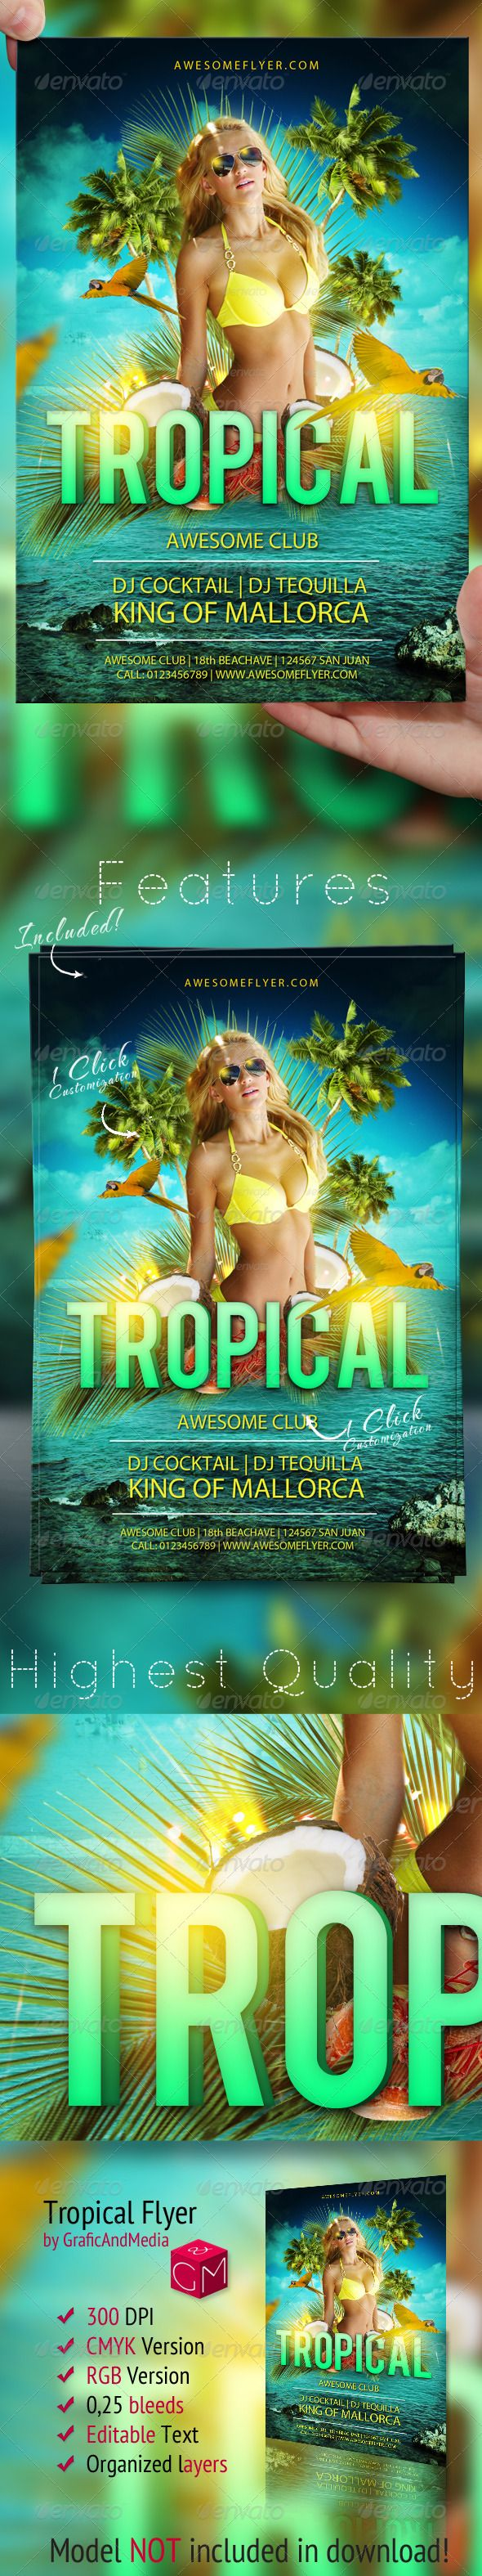 tropical flyer template events flyers download here https